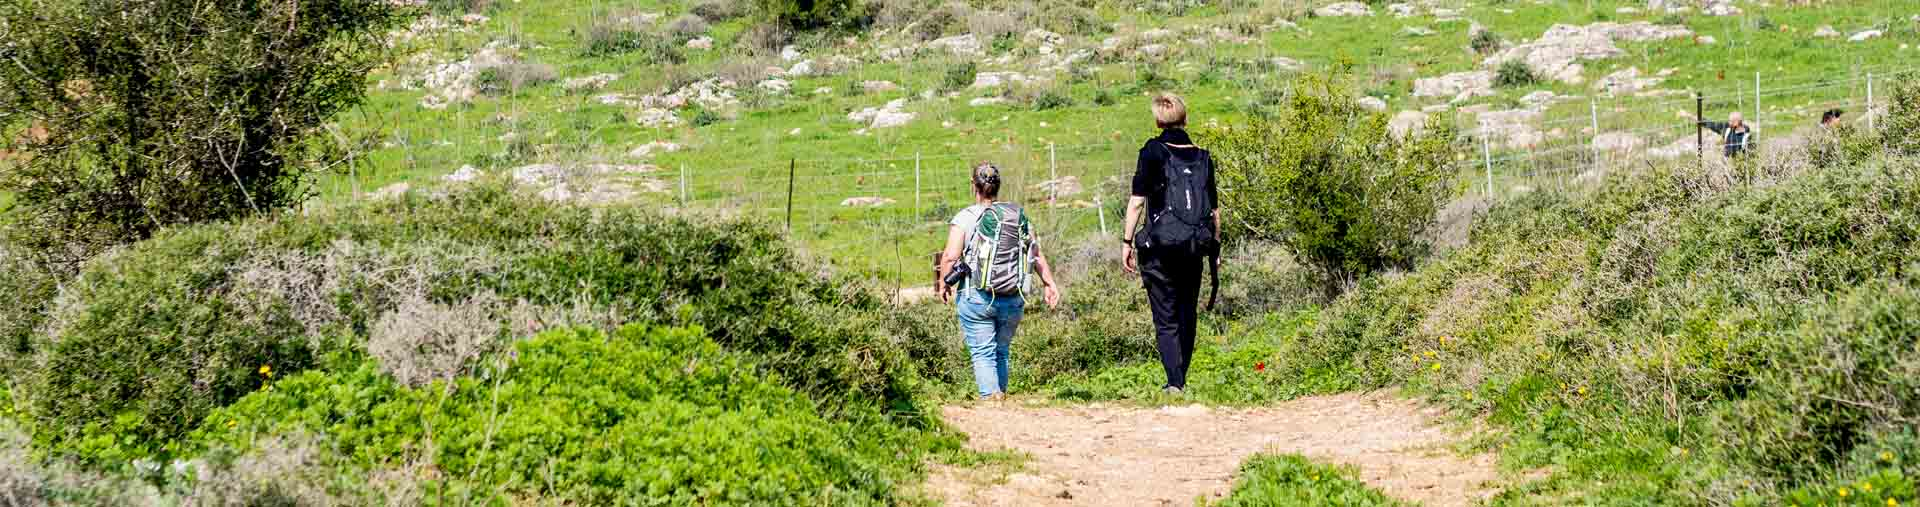 Jesus Trail Hiking Package from Tel Aviv